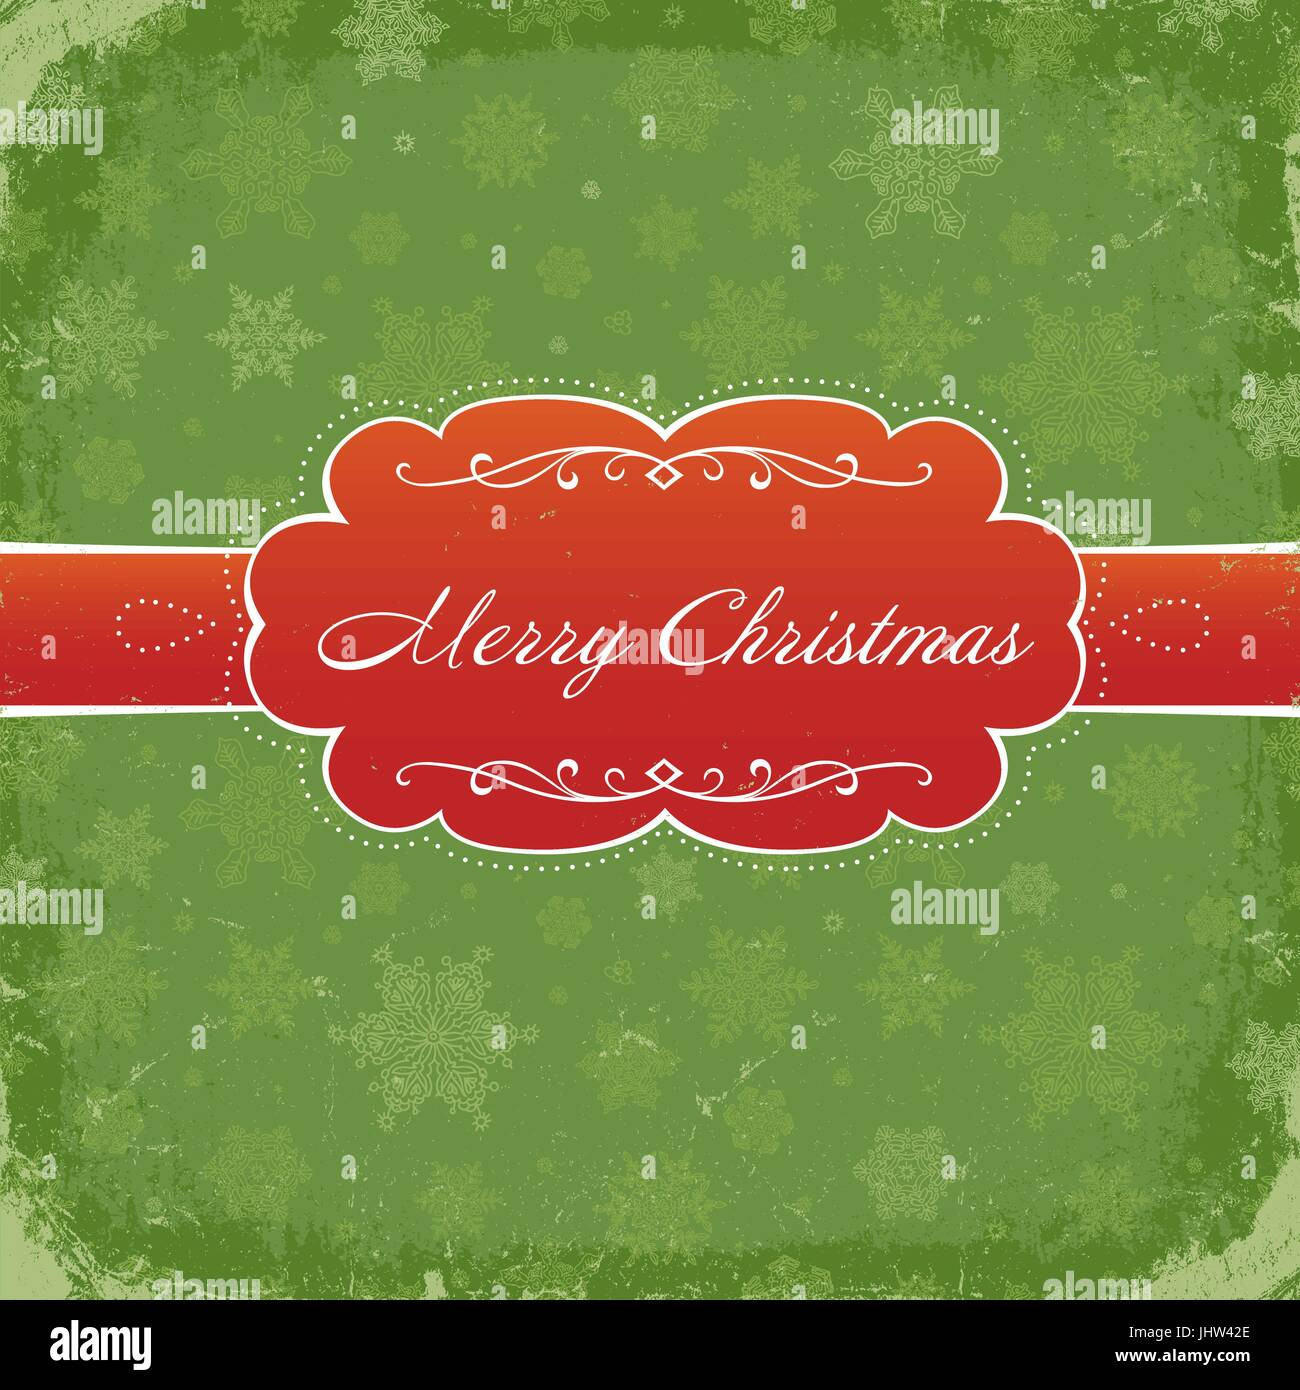 Merry Christmas Grunge Invitation Background. Vector, Eps8. - Stock Vector